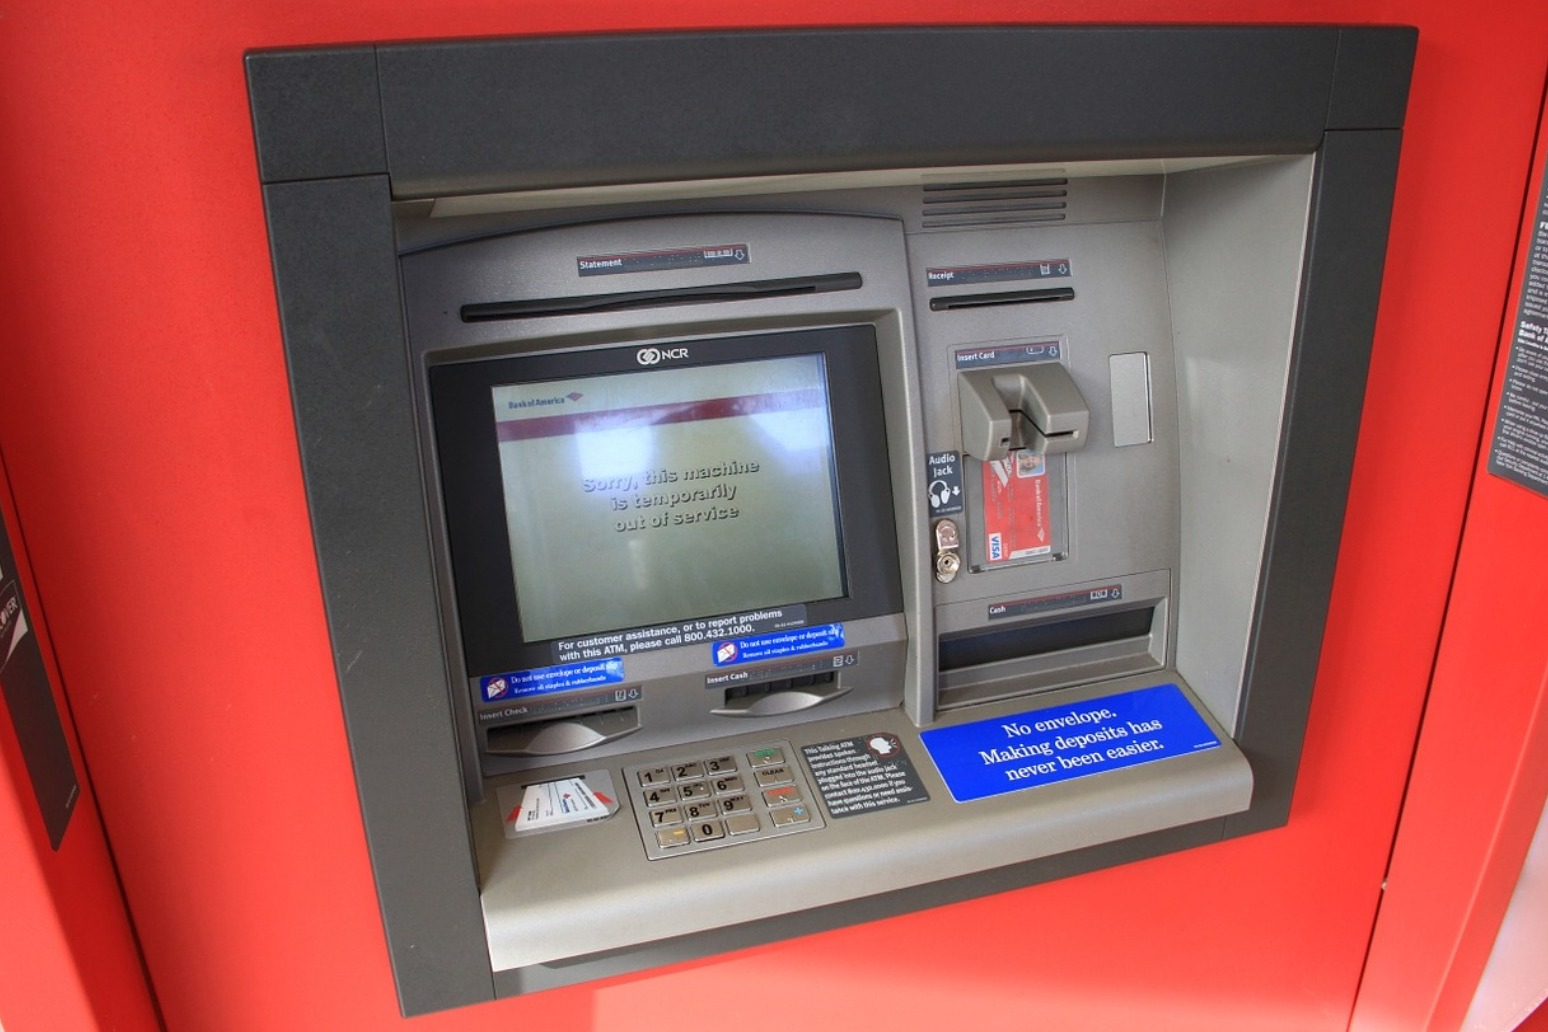 CASH MACHINES TO OFFER BANKING SERVICES WITHIN FIVE YEARS, SAYS ATM GIANT